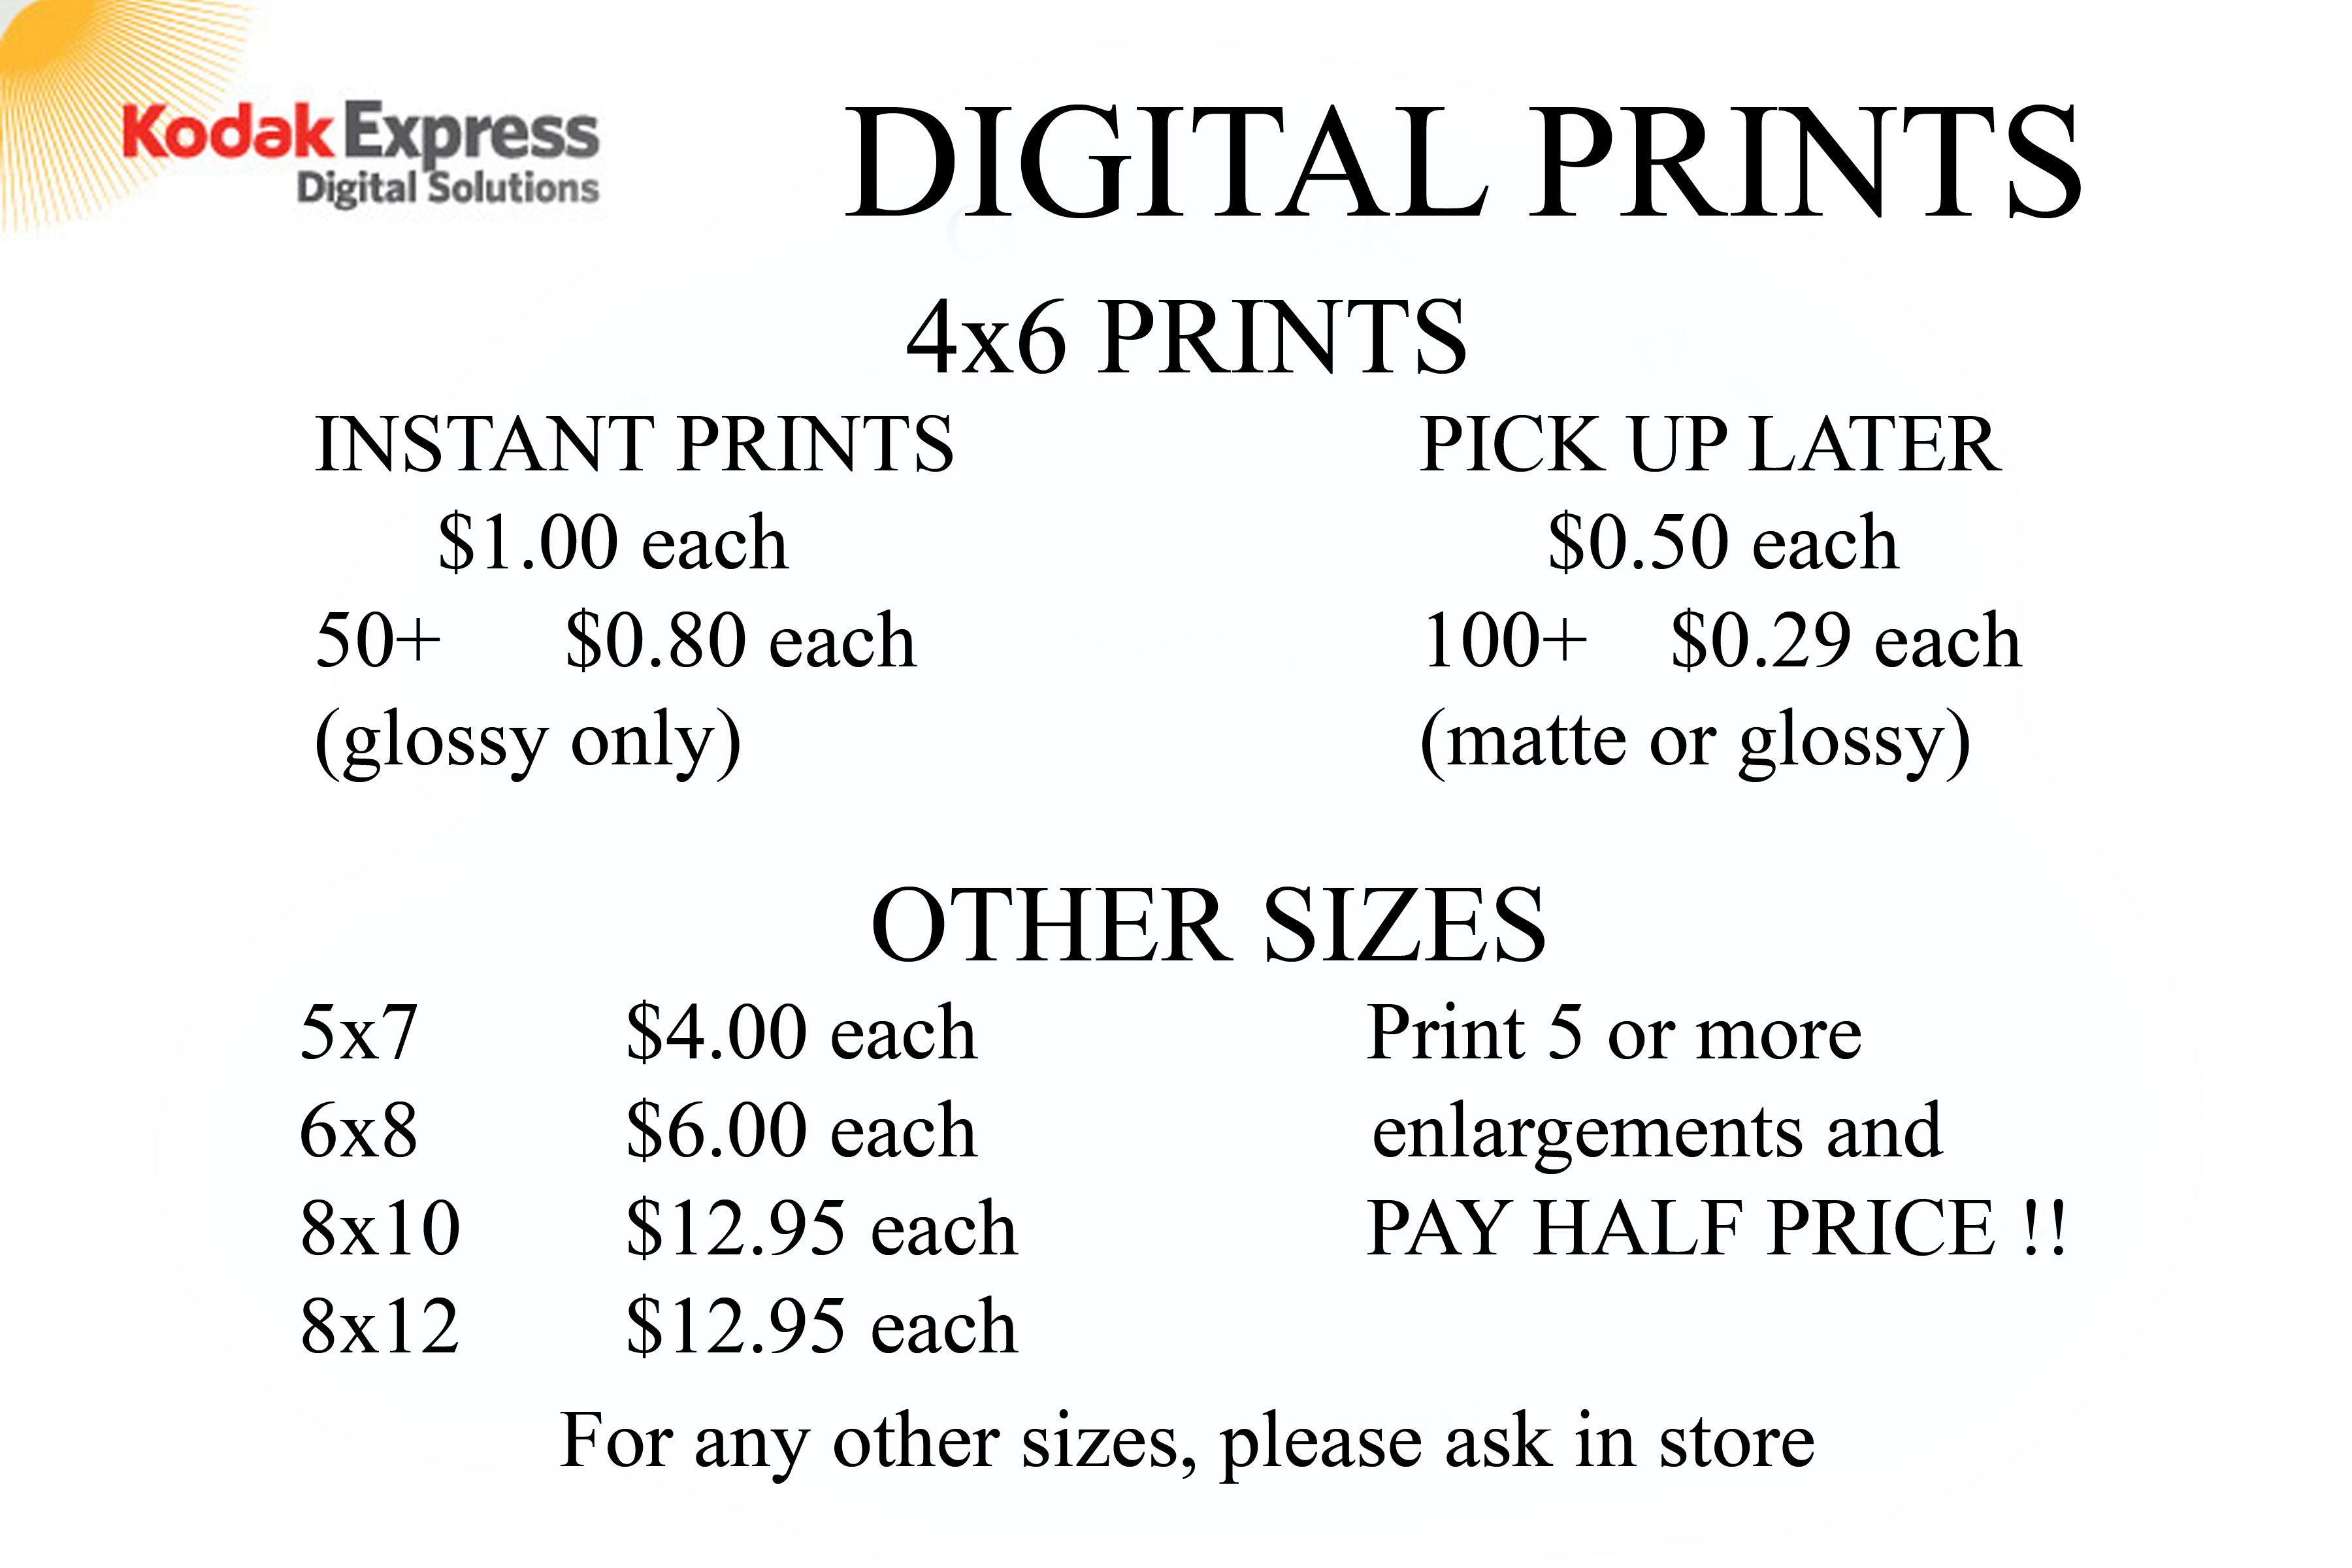 Kodak Express Digital Solutions' rate list for Digital Prints